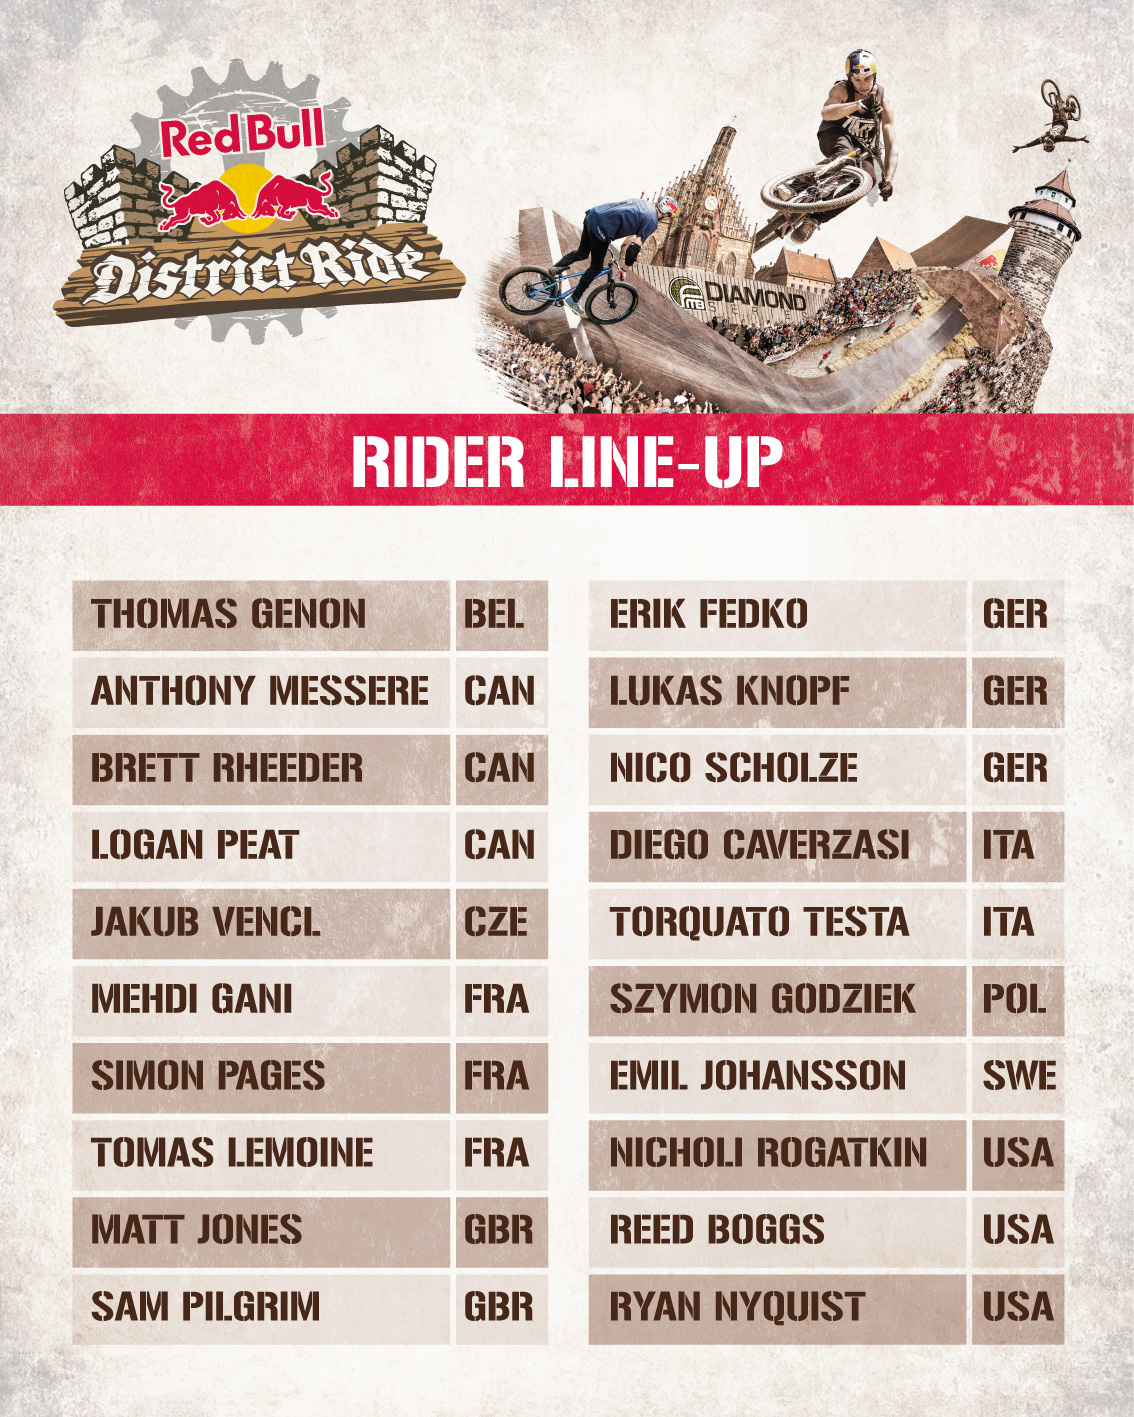 Red Bull District Ride lineup